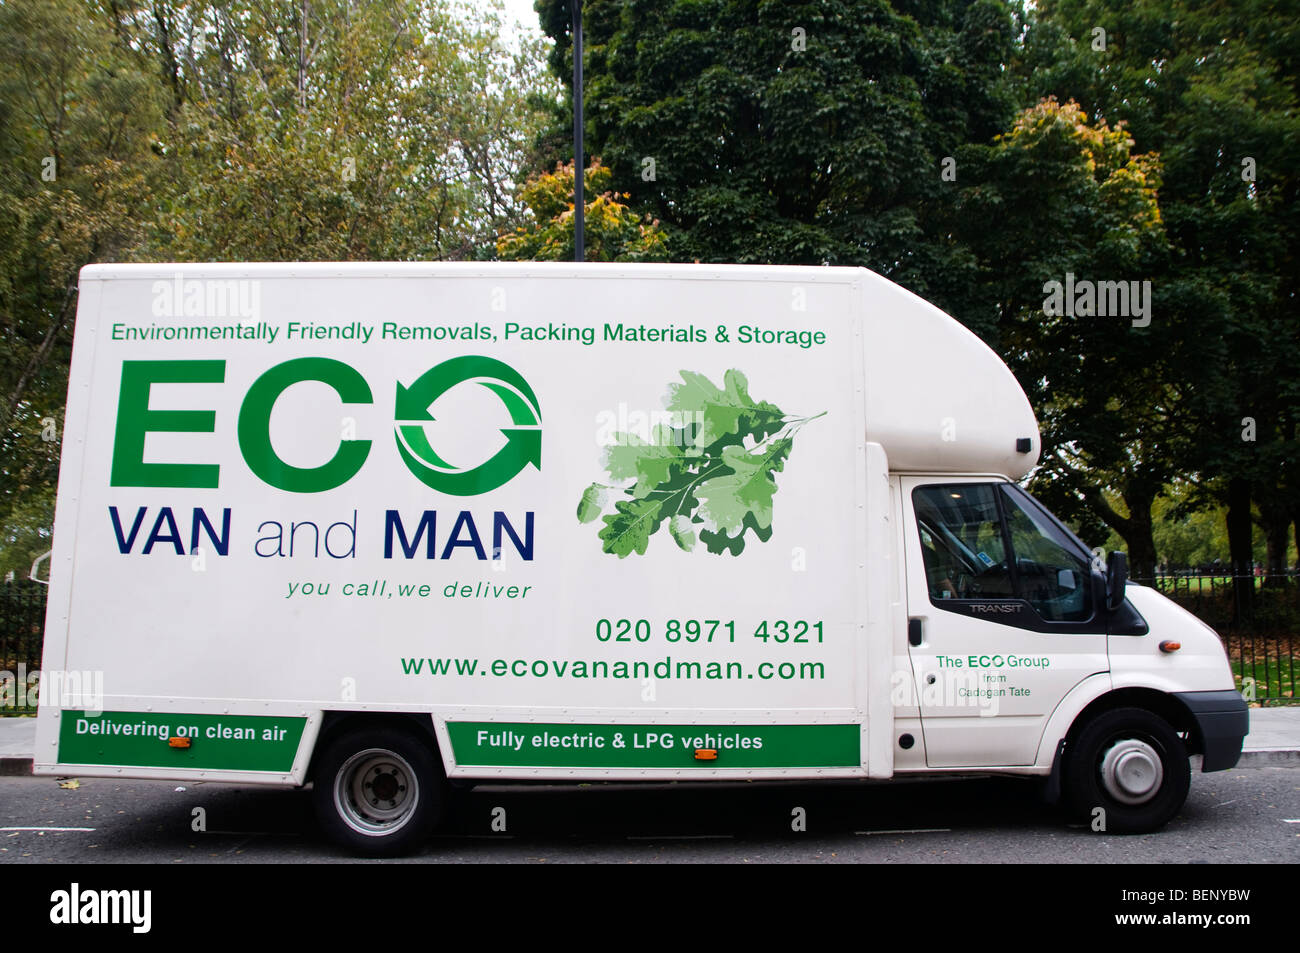 Eco van - environmentally friendly removals van parked in front of a park - Stock Image